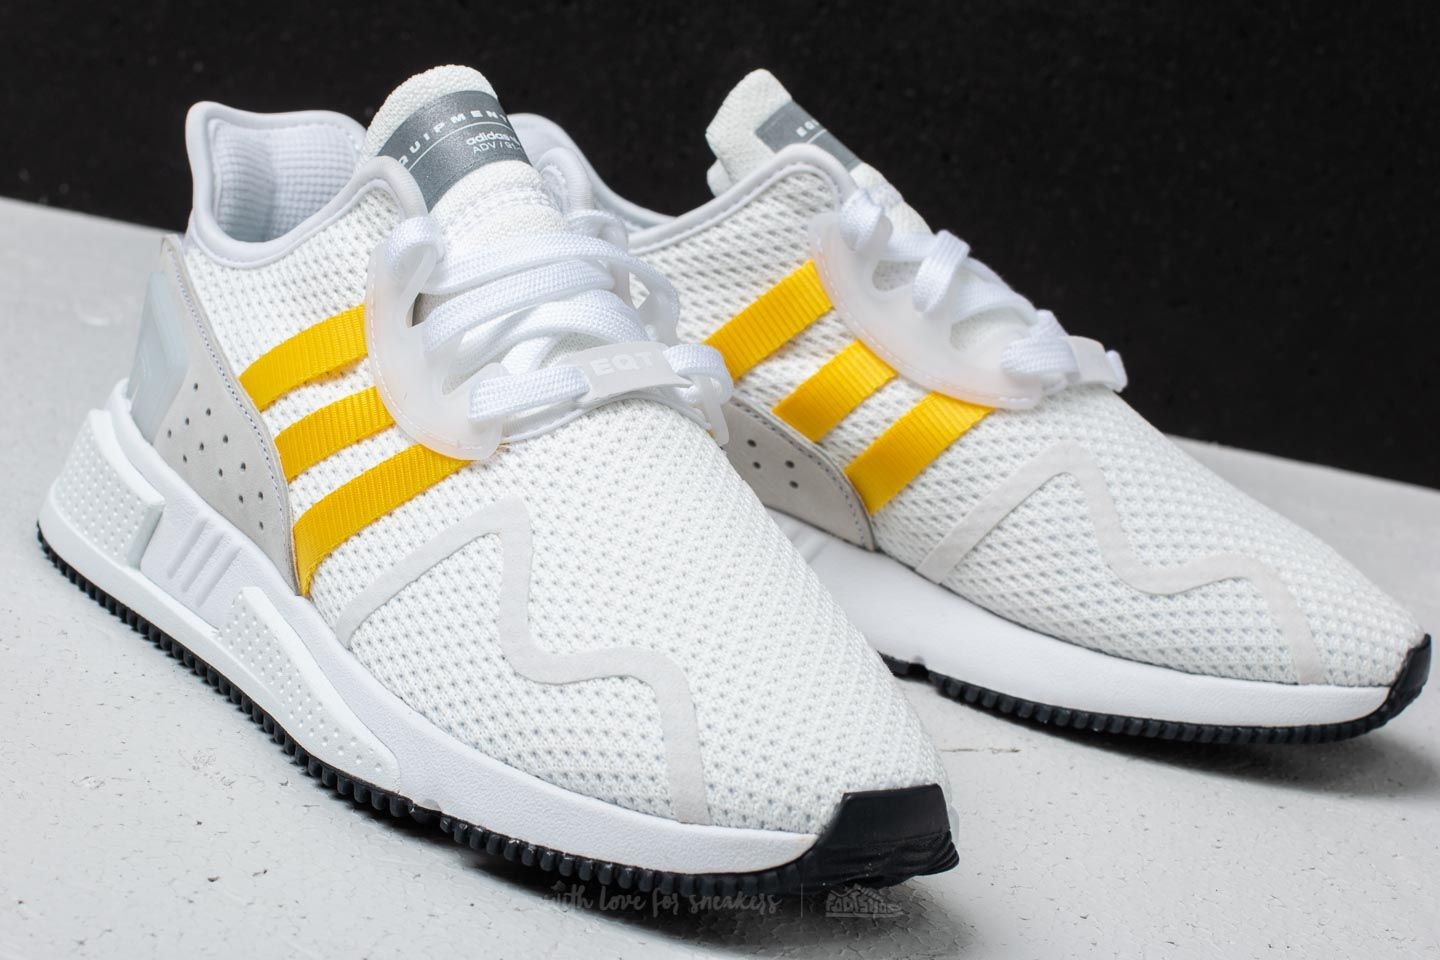 ed592107bc51 ... promo code for adidas eqt cushion adv ftw white eqt yellow silver  metallic at a great